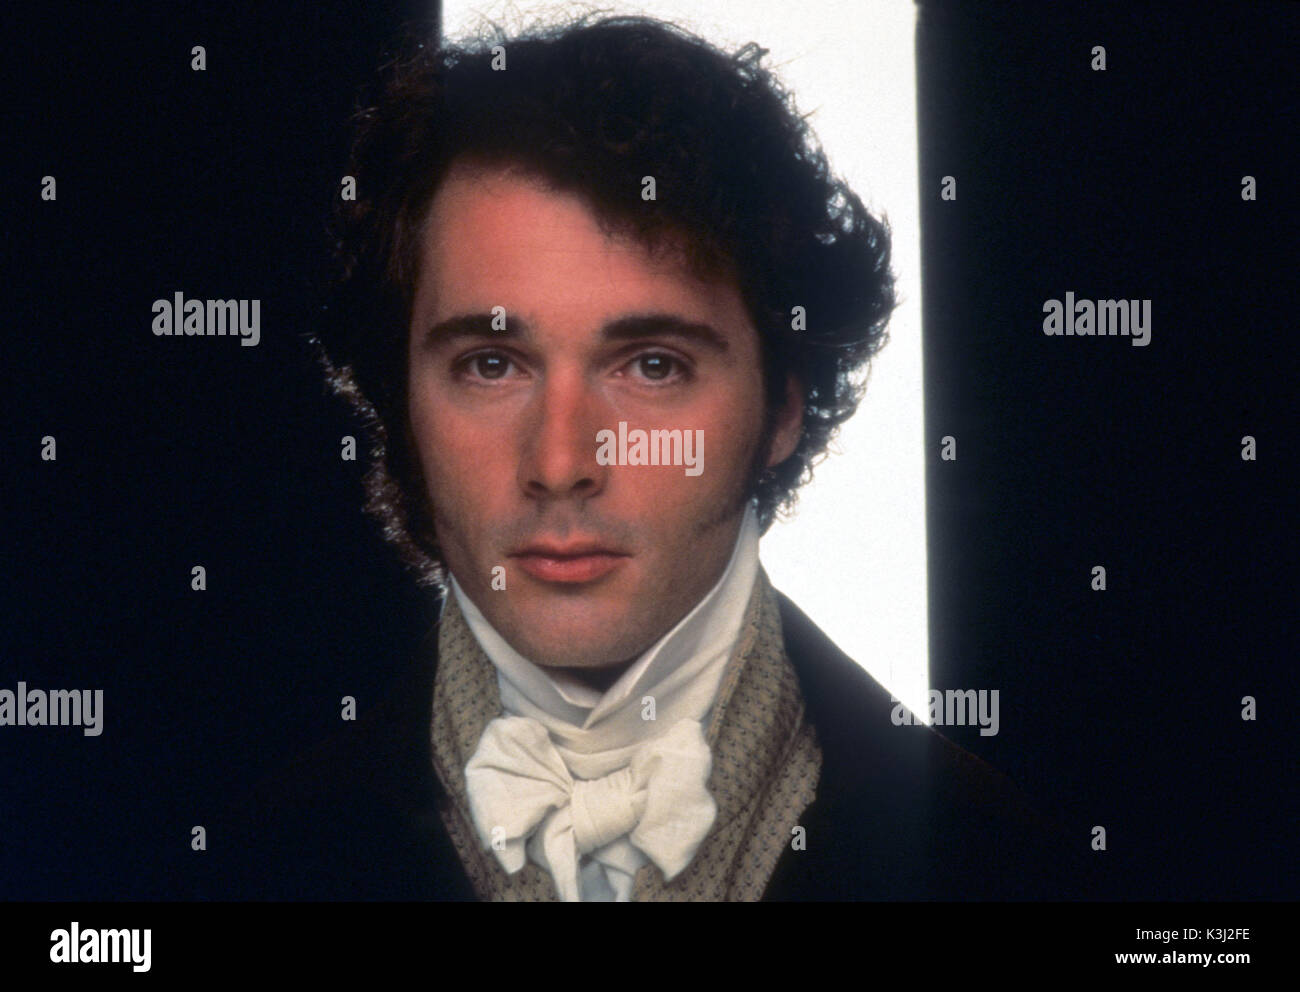 Sense And Sensibility Greg Wise As John Willoughby Date